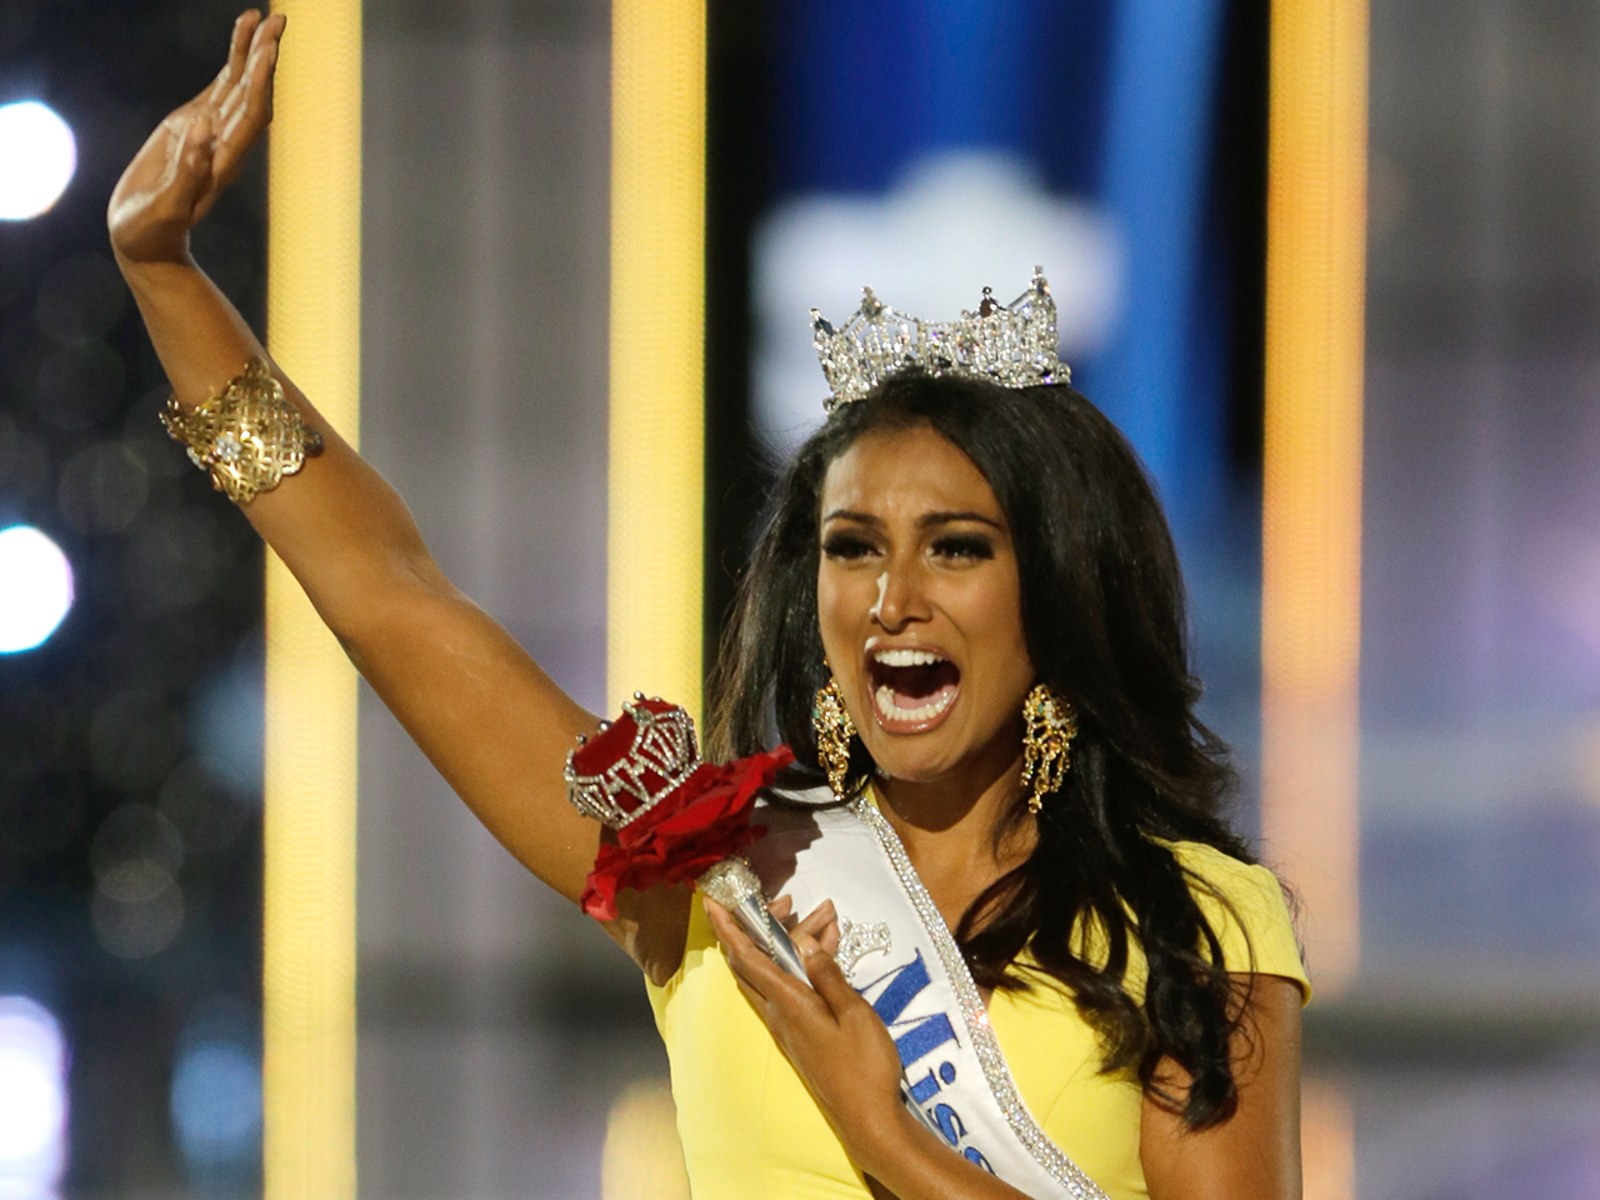 New Miss America & # x27; s Indian heritage sparks racist comments - TODAY.com